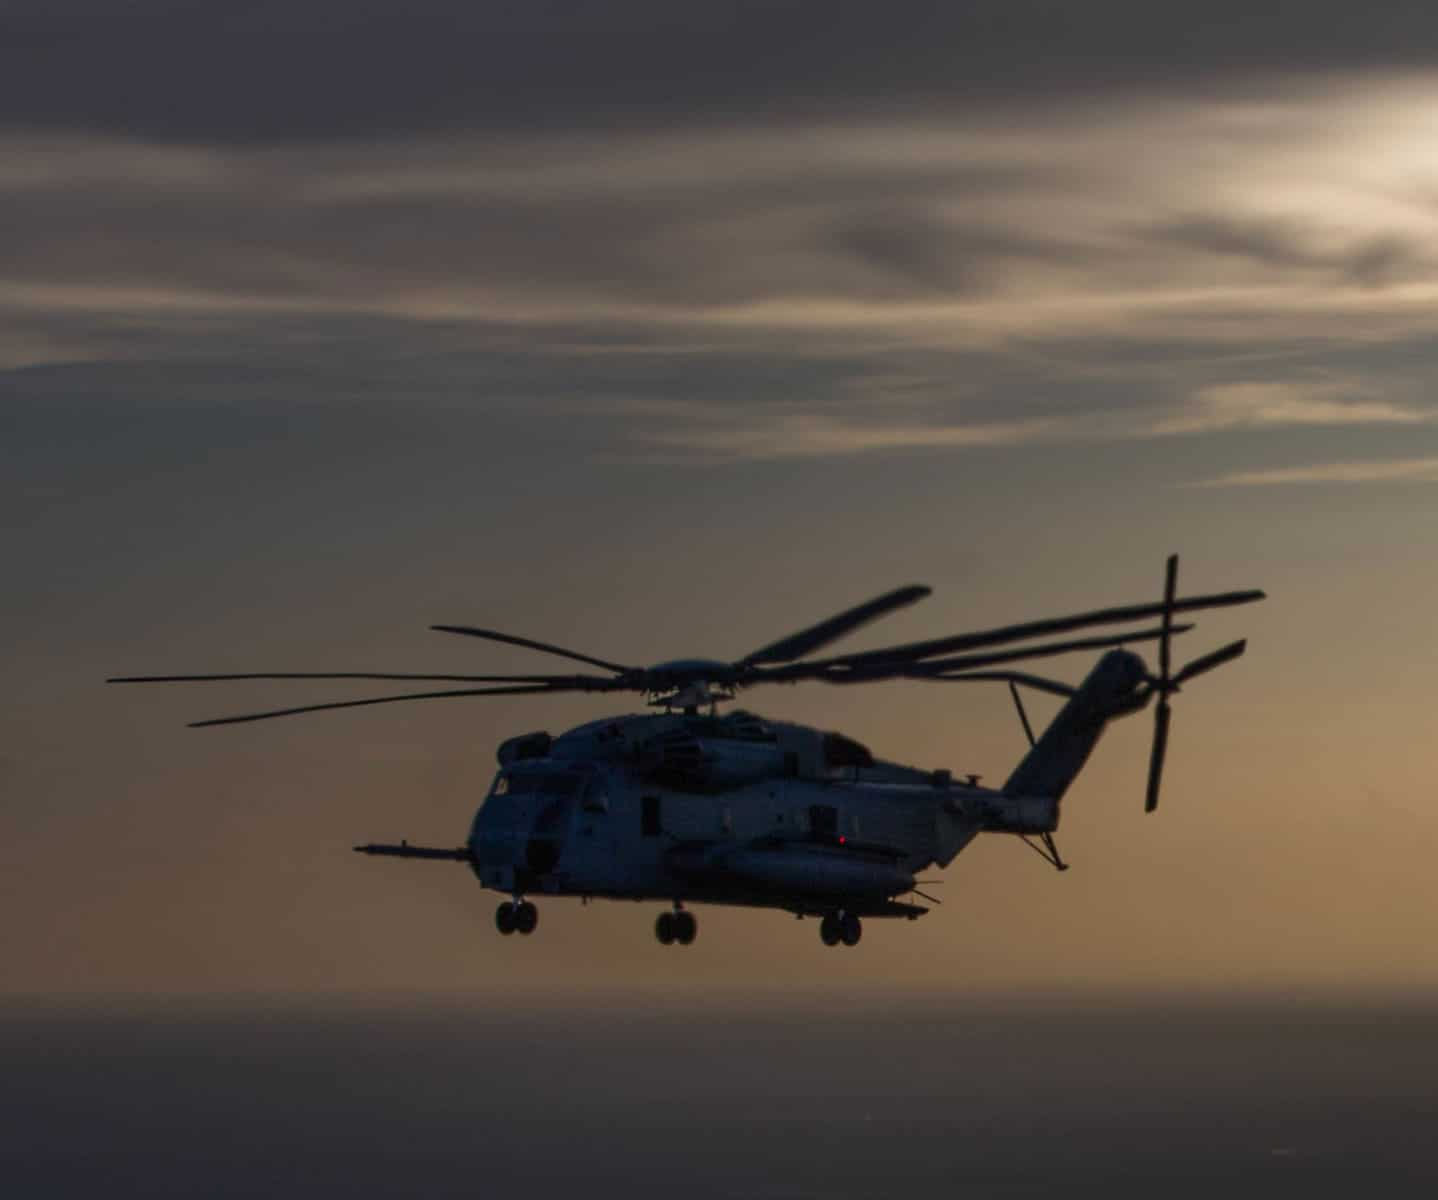 A CH-53E Super Stallion assigned to Marine Heavy Helicopter Squadron (HMH) 461 conducts a live fire range flight during Raven 17-06 in Gulfport, Mississippi.